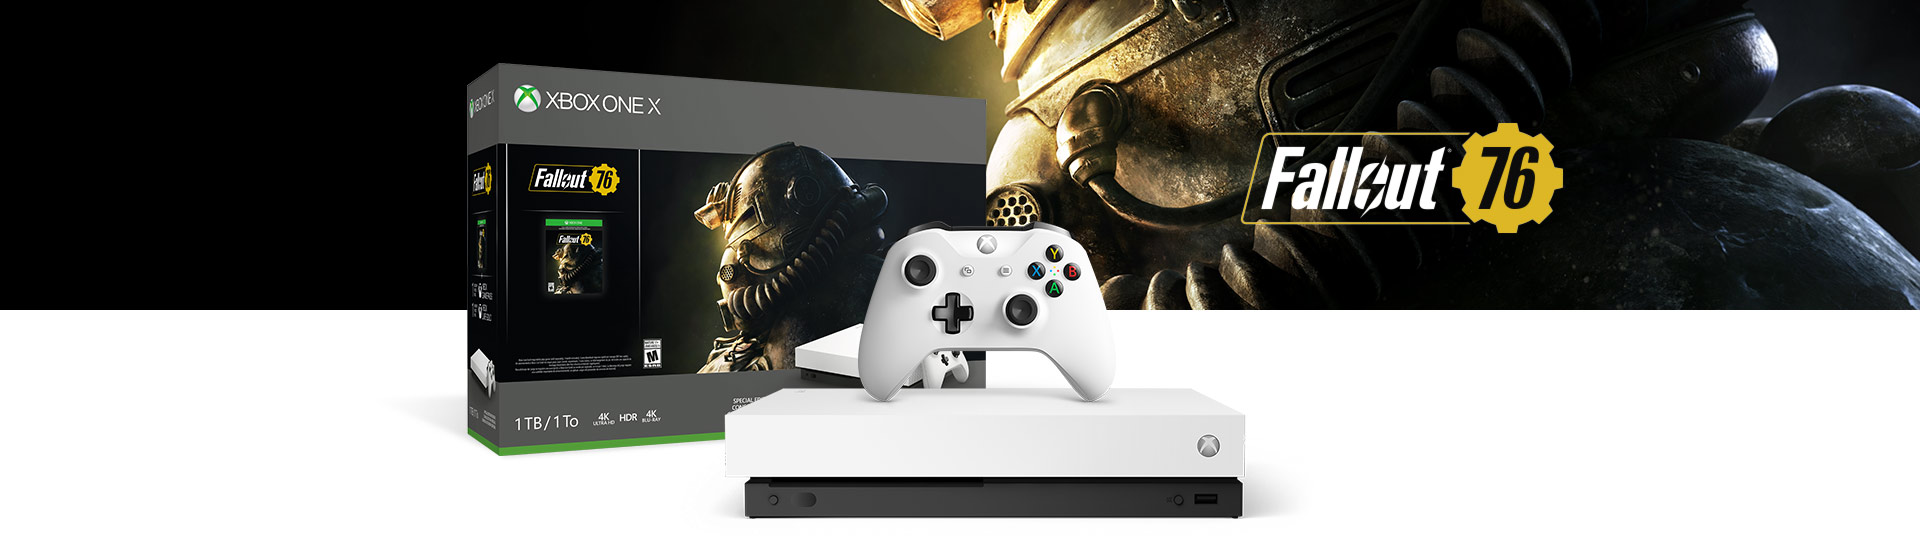 Xbox One X and Controller next to the Xbox One X Fallout 76 Special Edition 1 terabyte product box